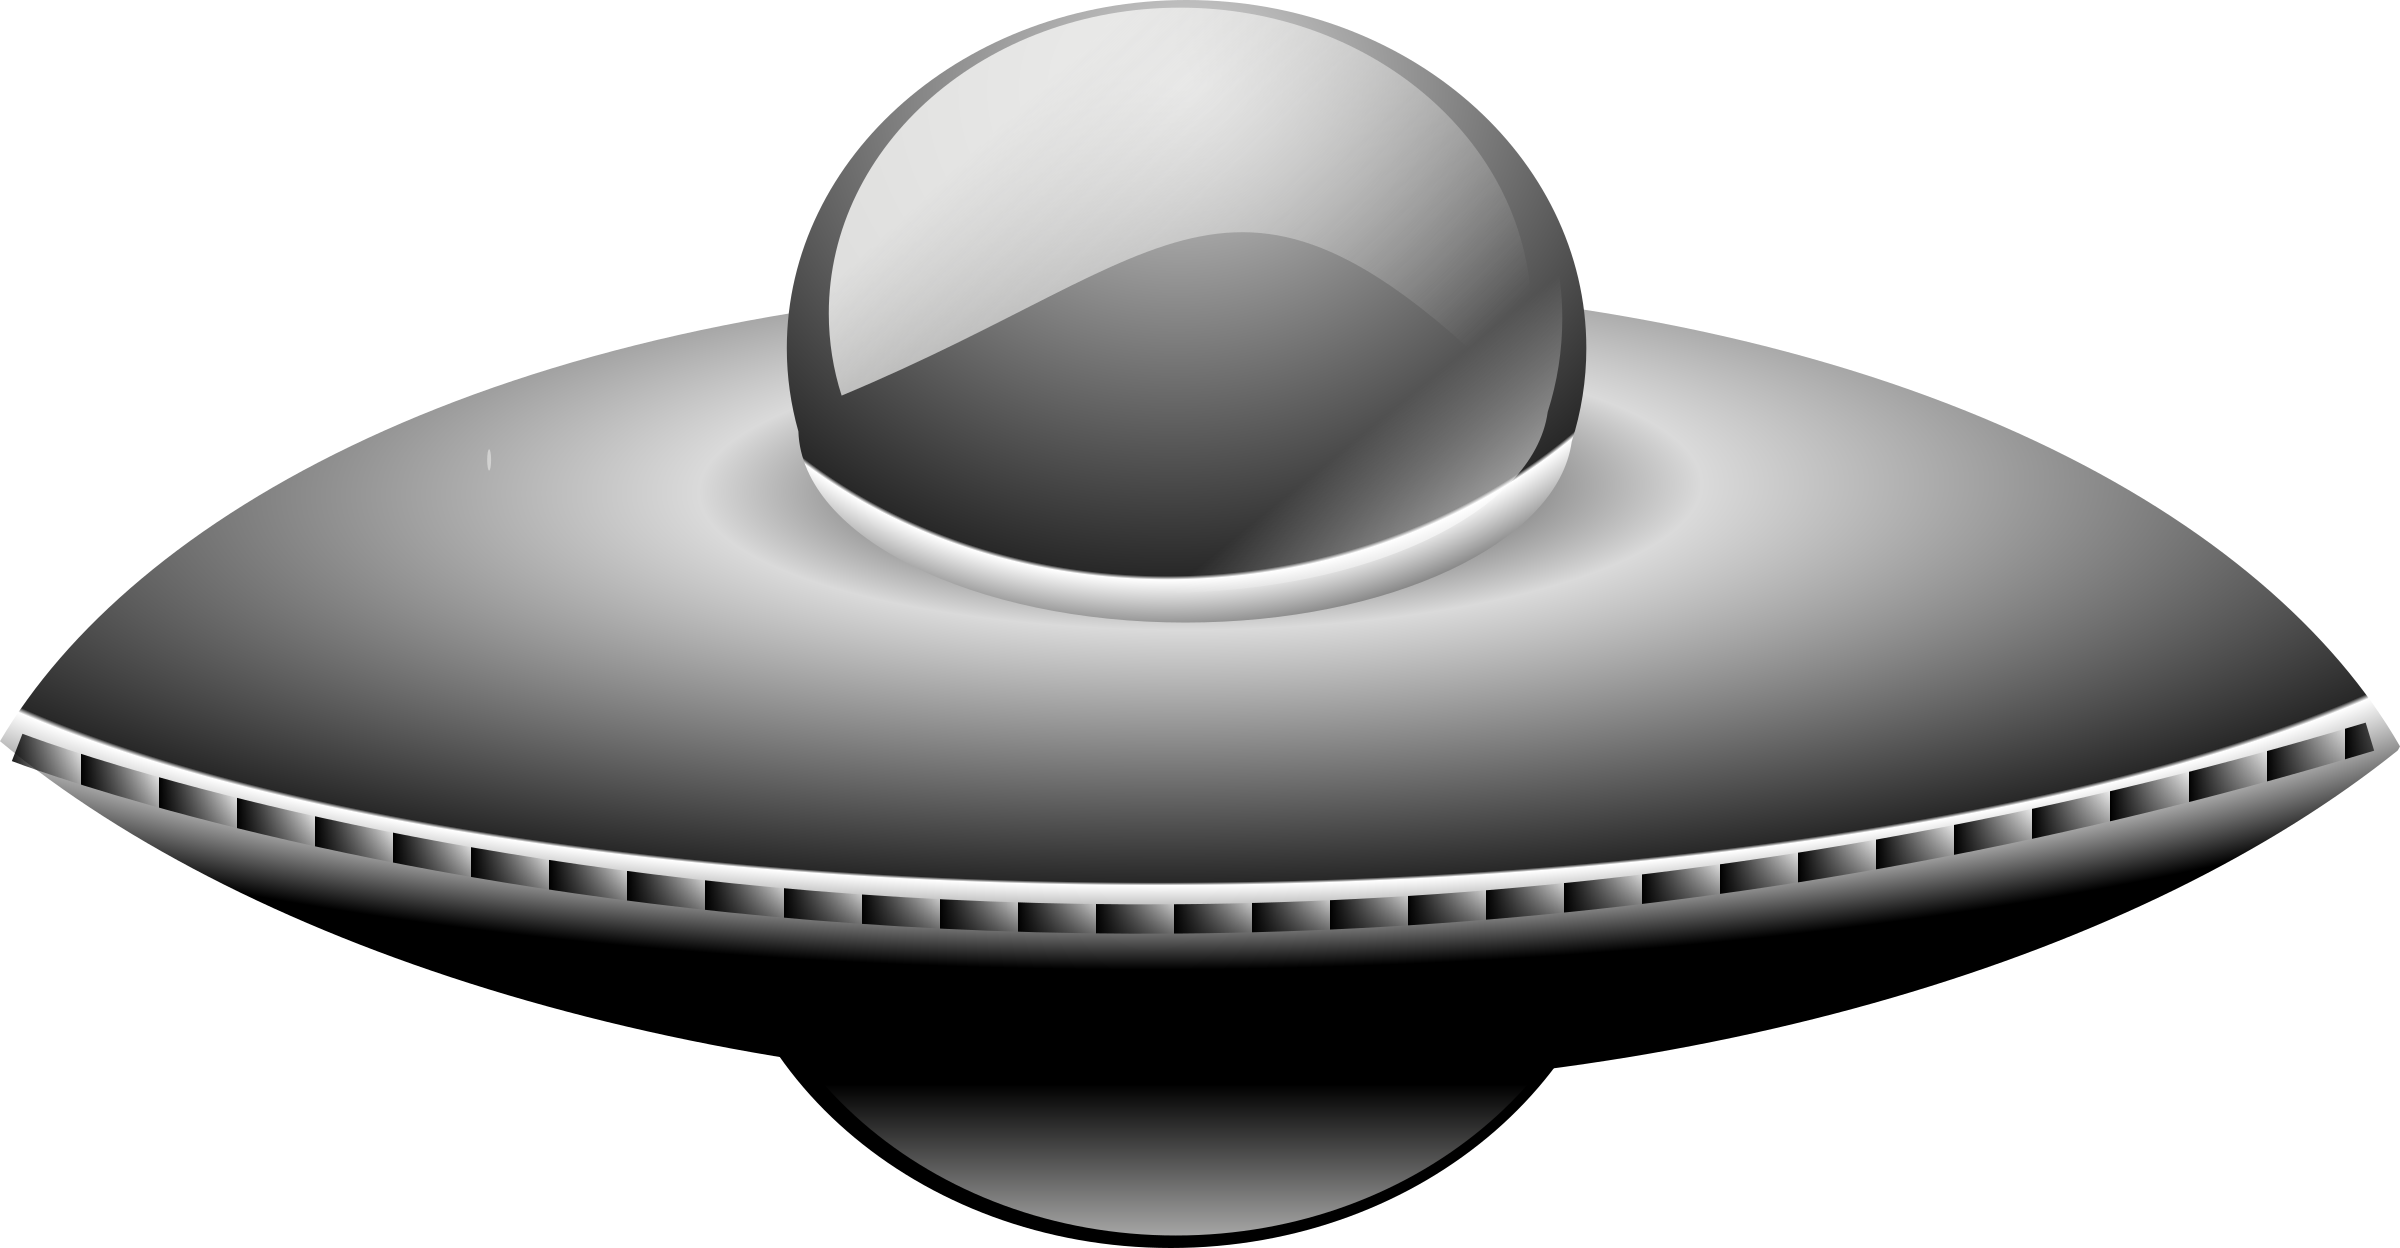 Ufo clipart clear background.  collection of transparent